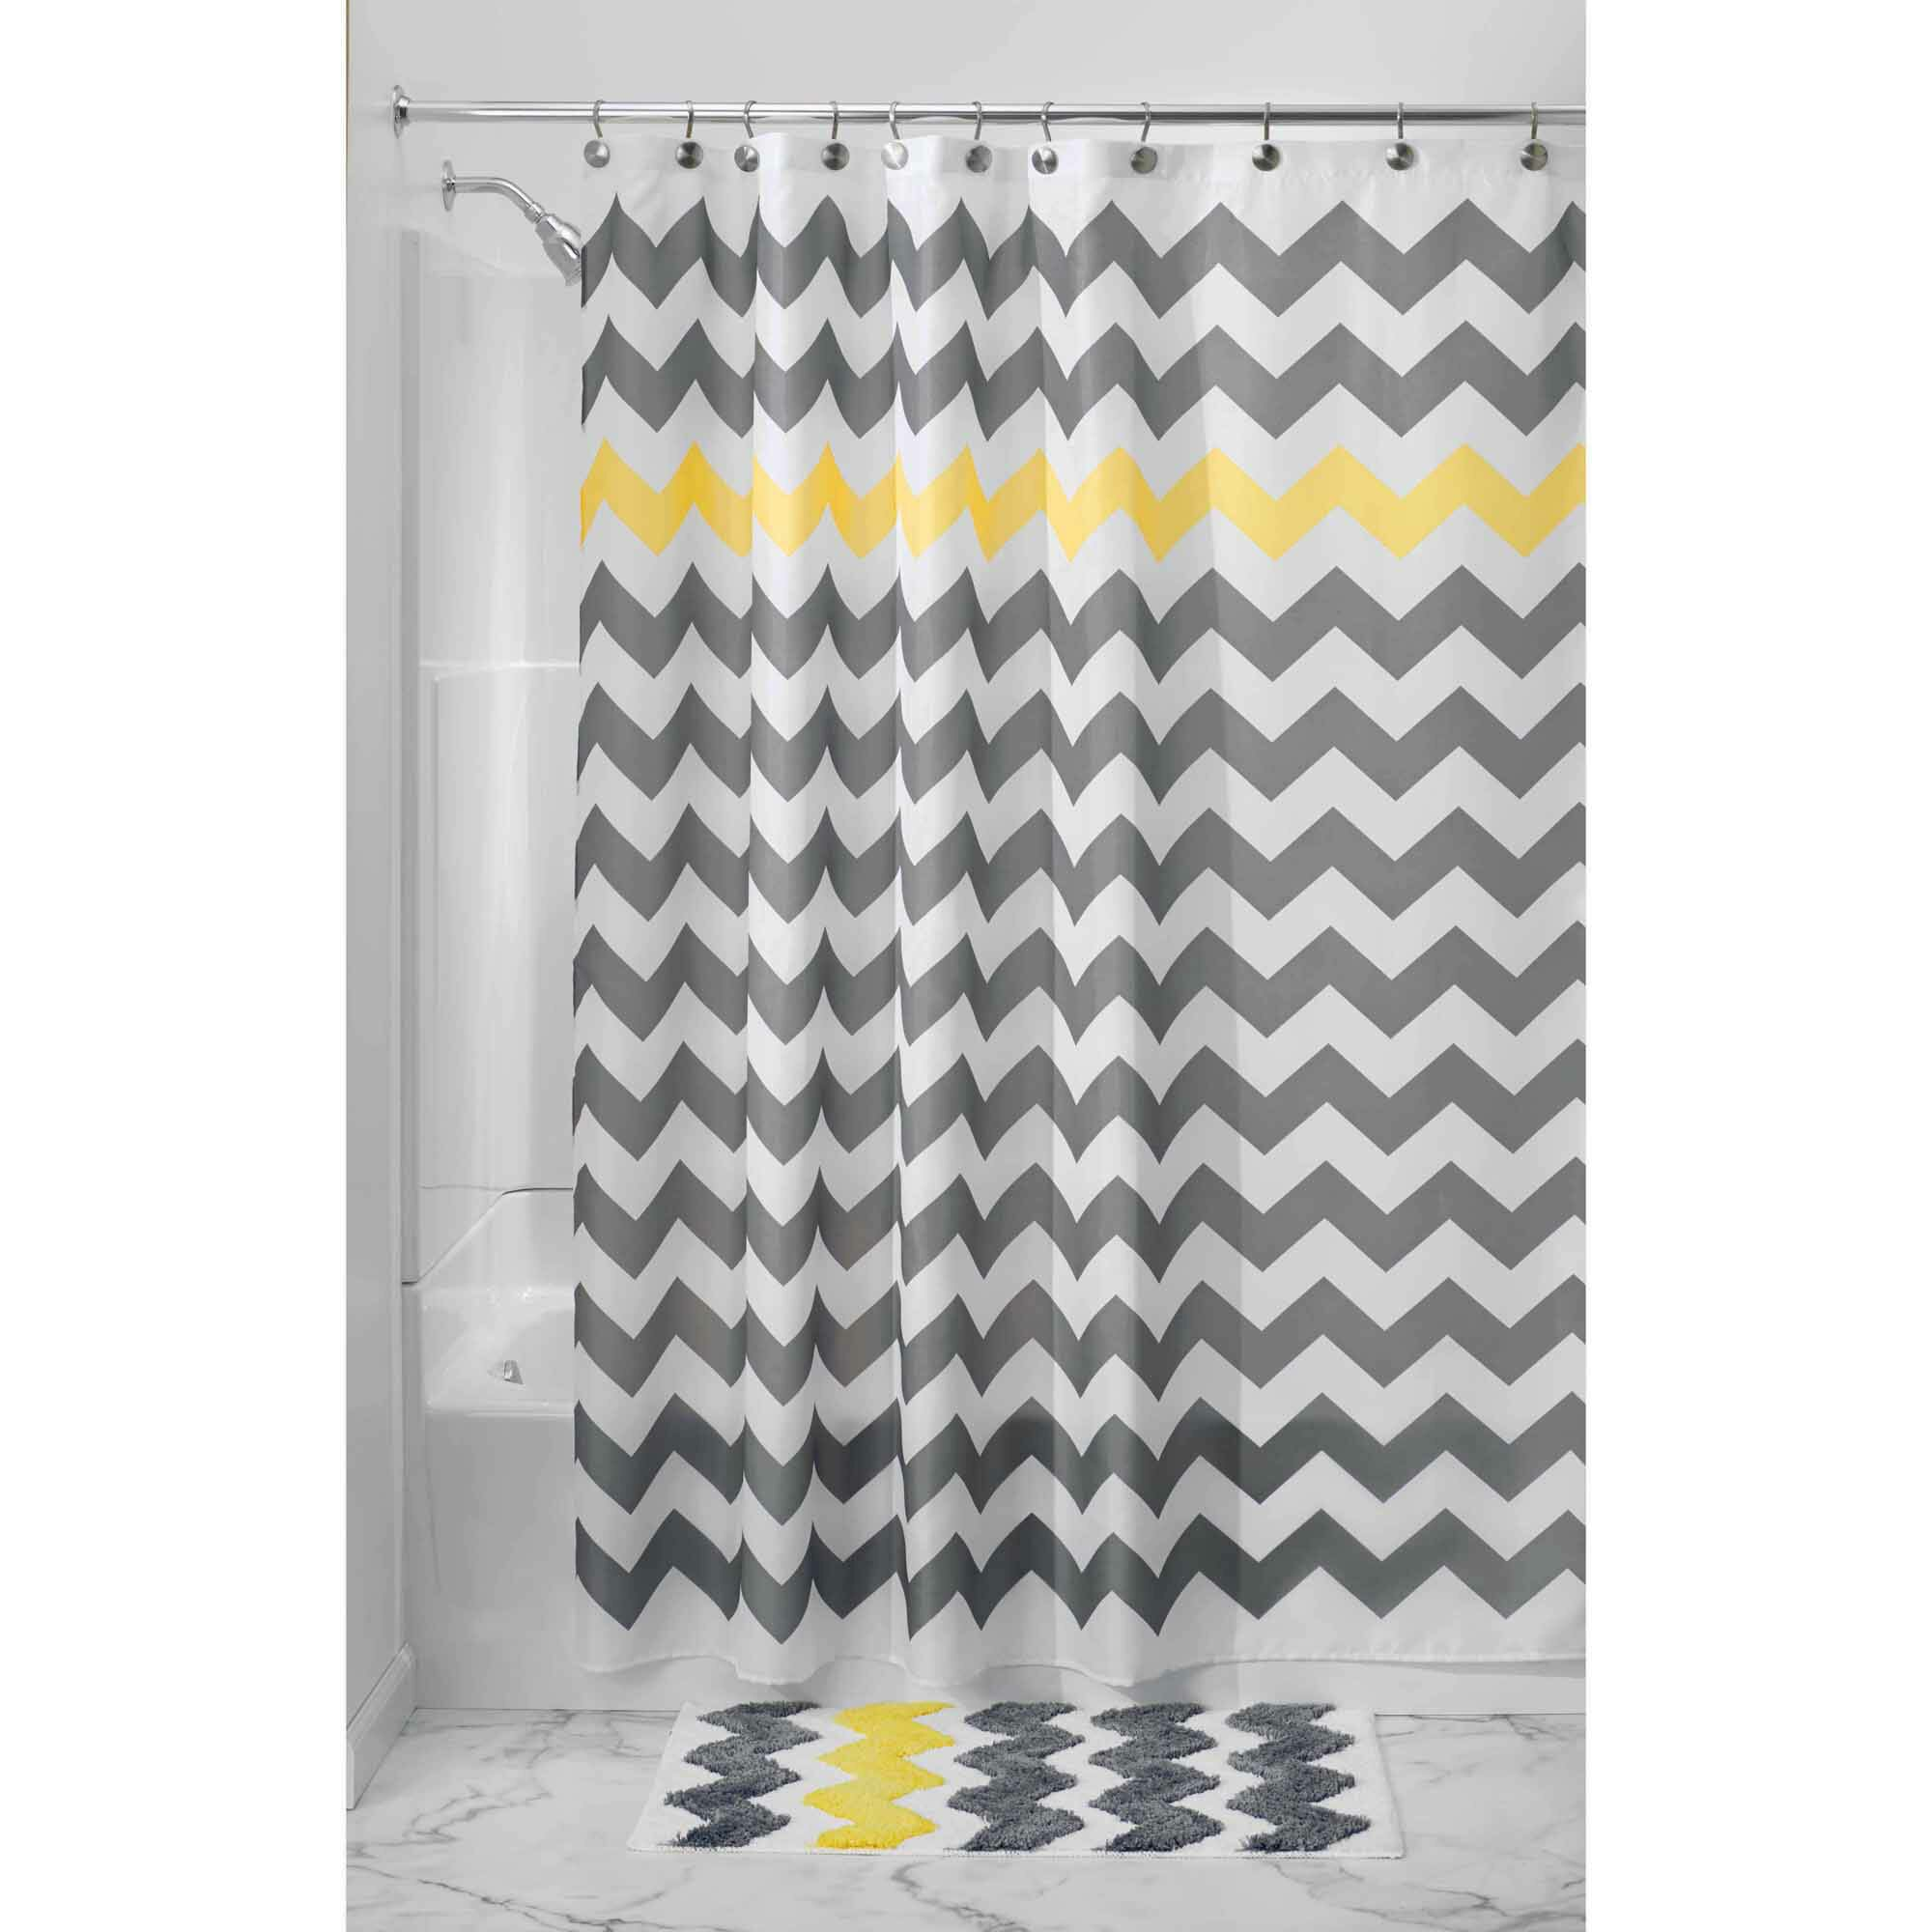 Bathroom window curtains with matching shower curtain - Neutral Shower Curtains Walmart Shower Curtain Matching Shower Curtain And Window Curtain